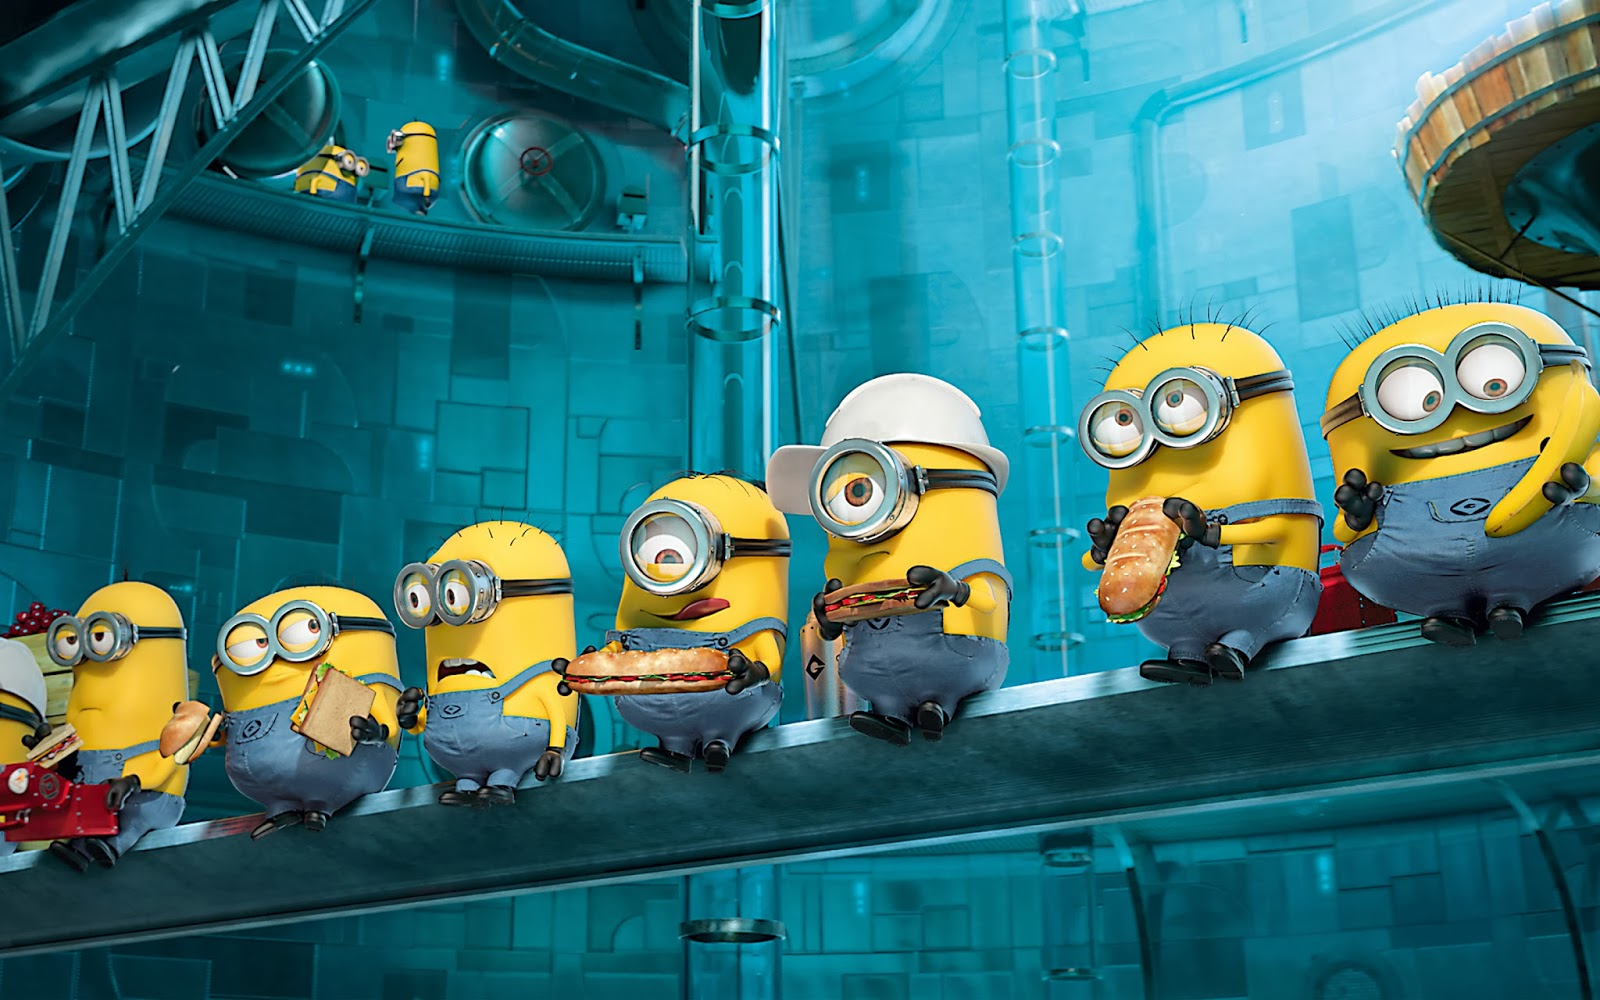 Minions Wallpaper For Tablet